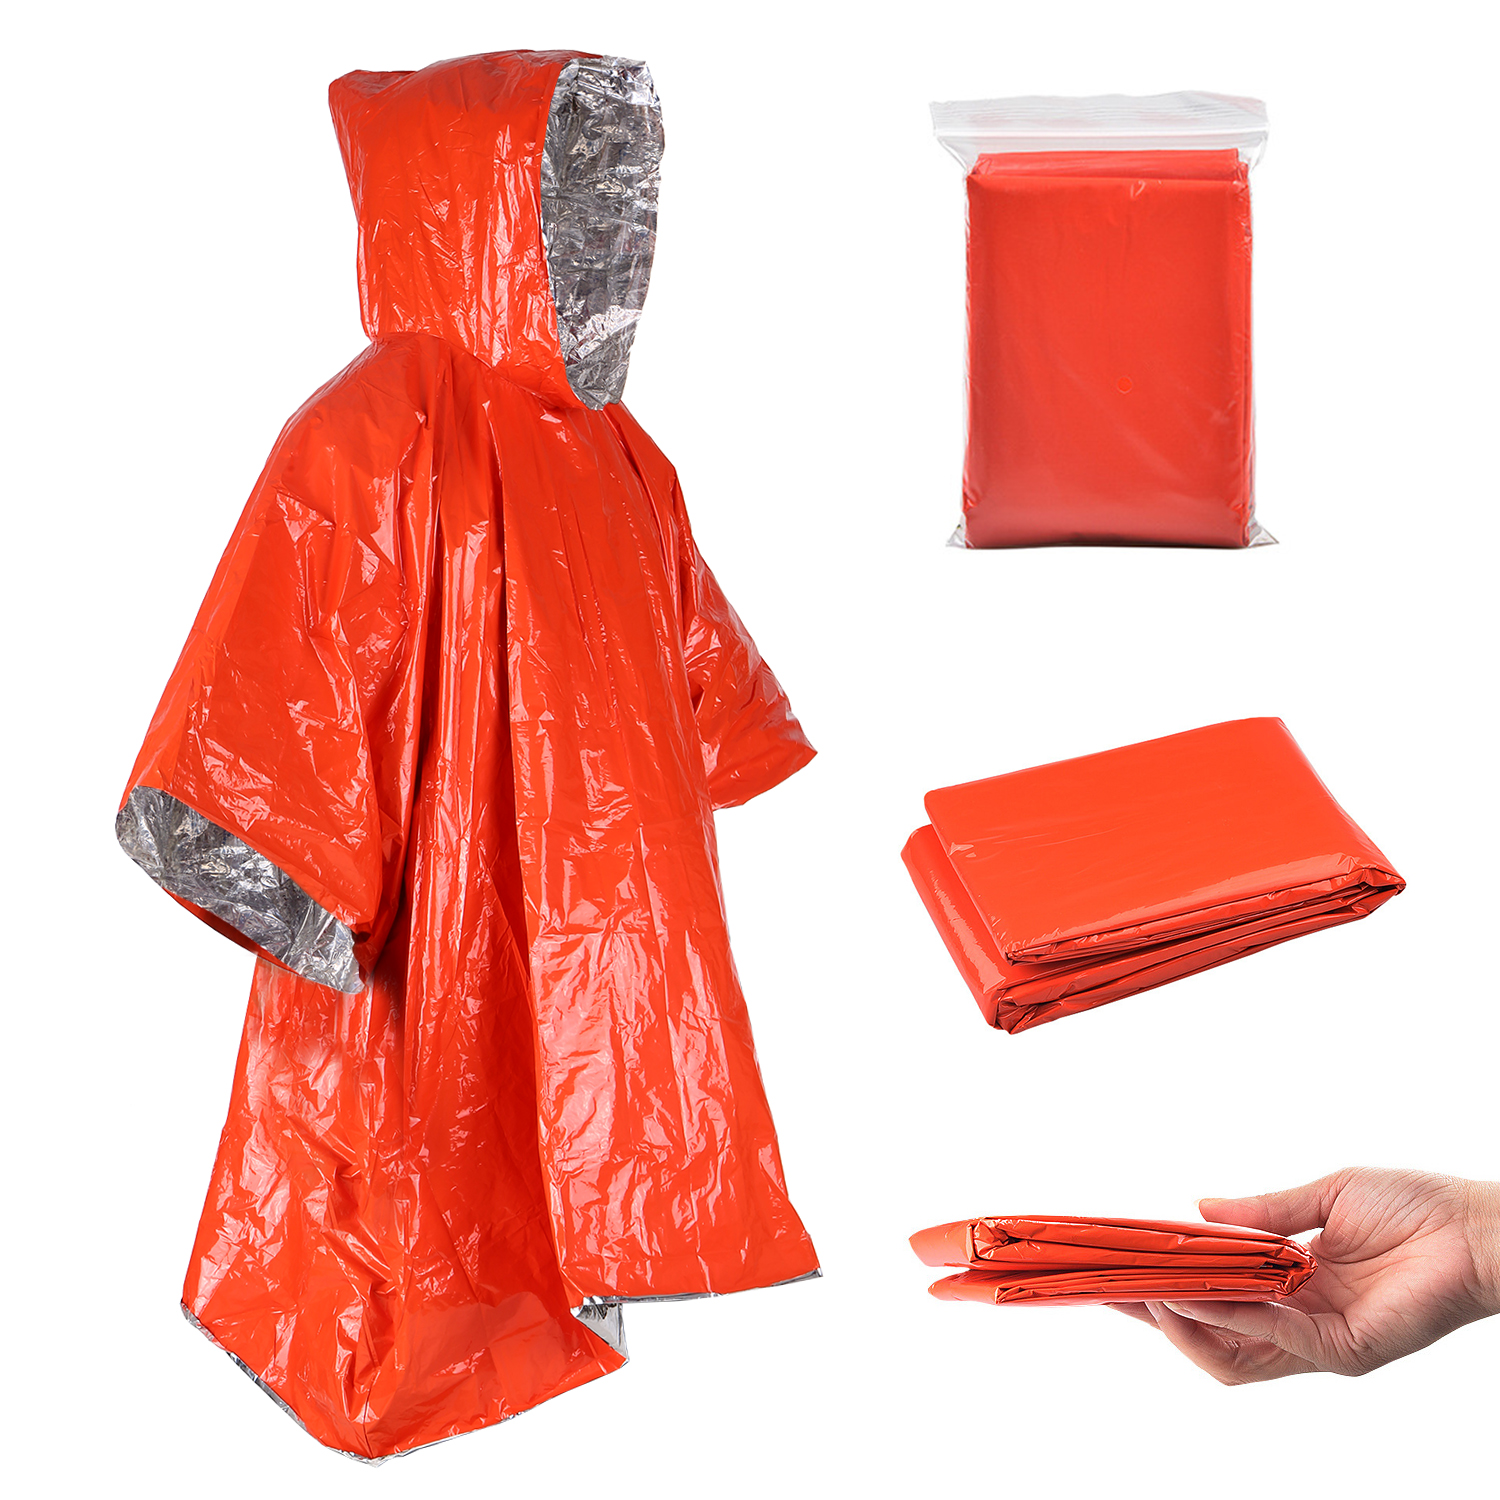 Orange Emergency Raincoat Aluminum Film Disposable Poncho Cold Insulation Rainwear Blankets Survival Tool Double-sided raincoat *1_124*101cm